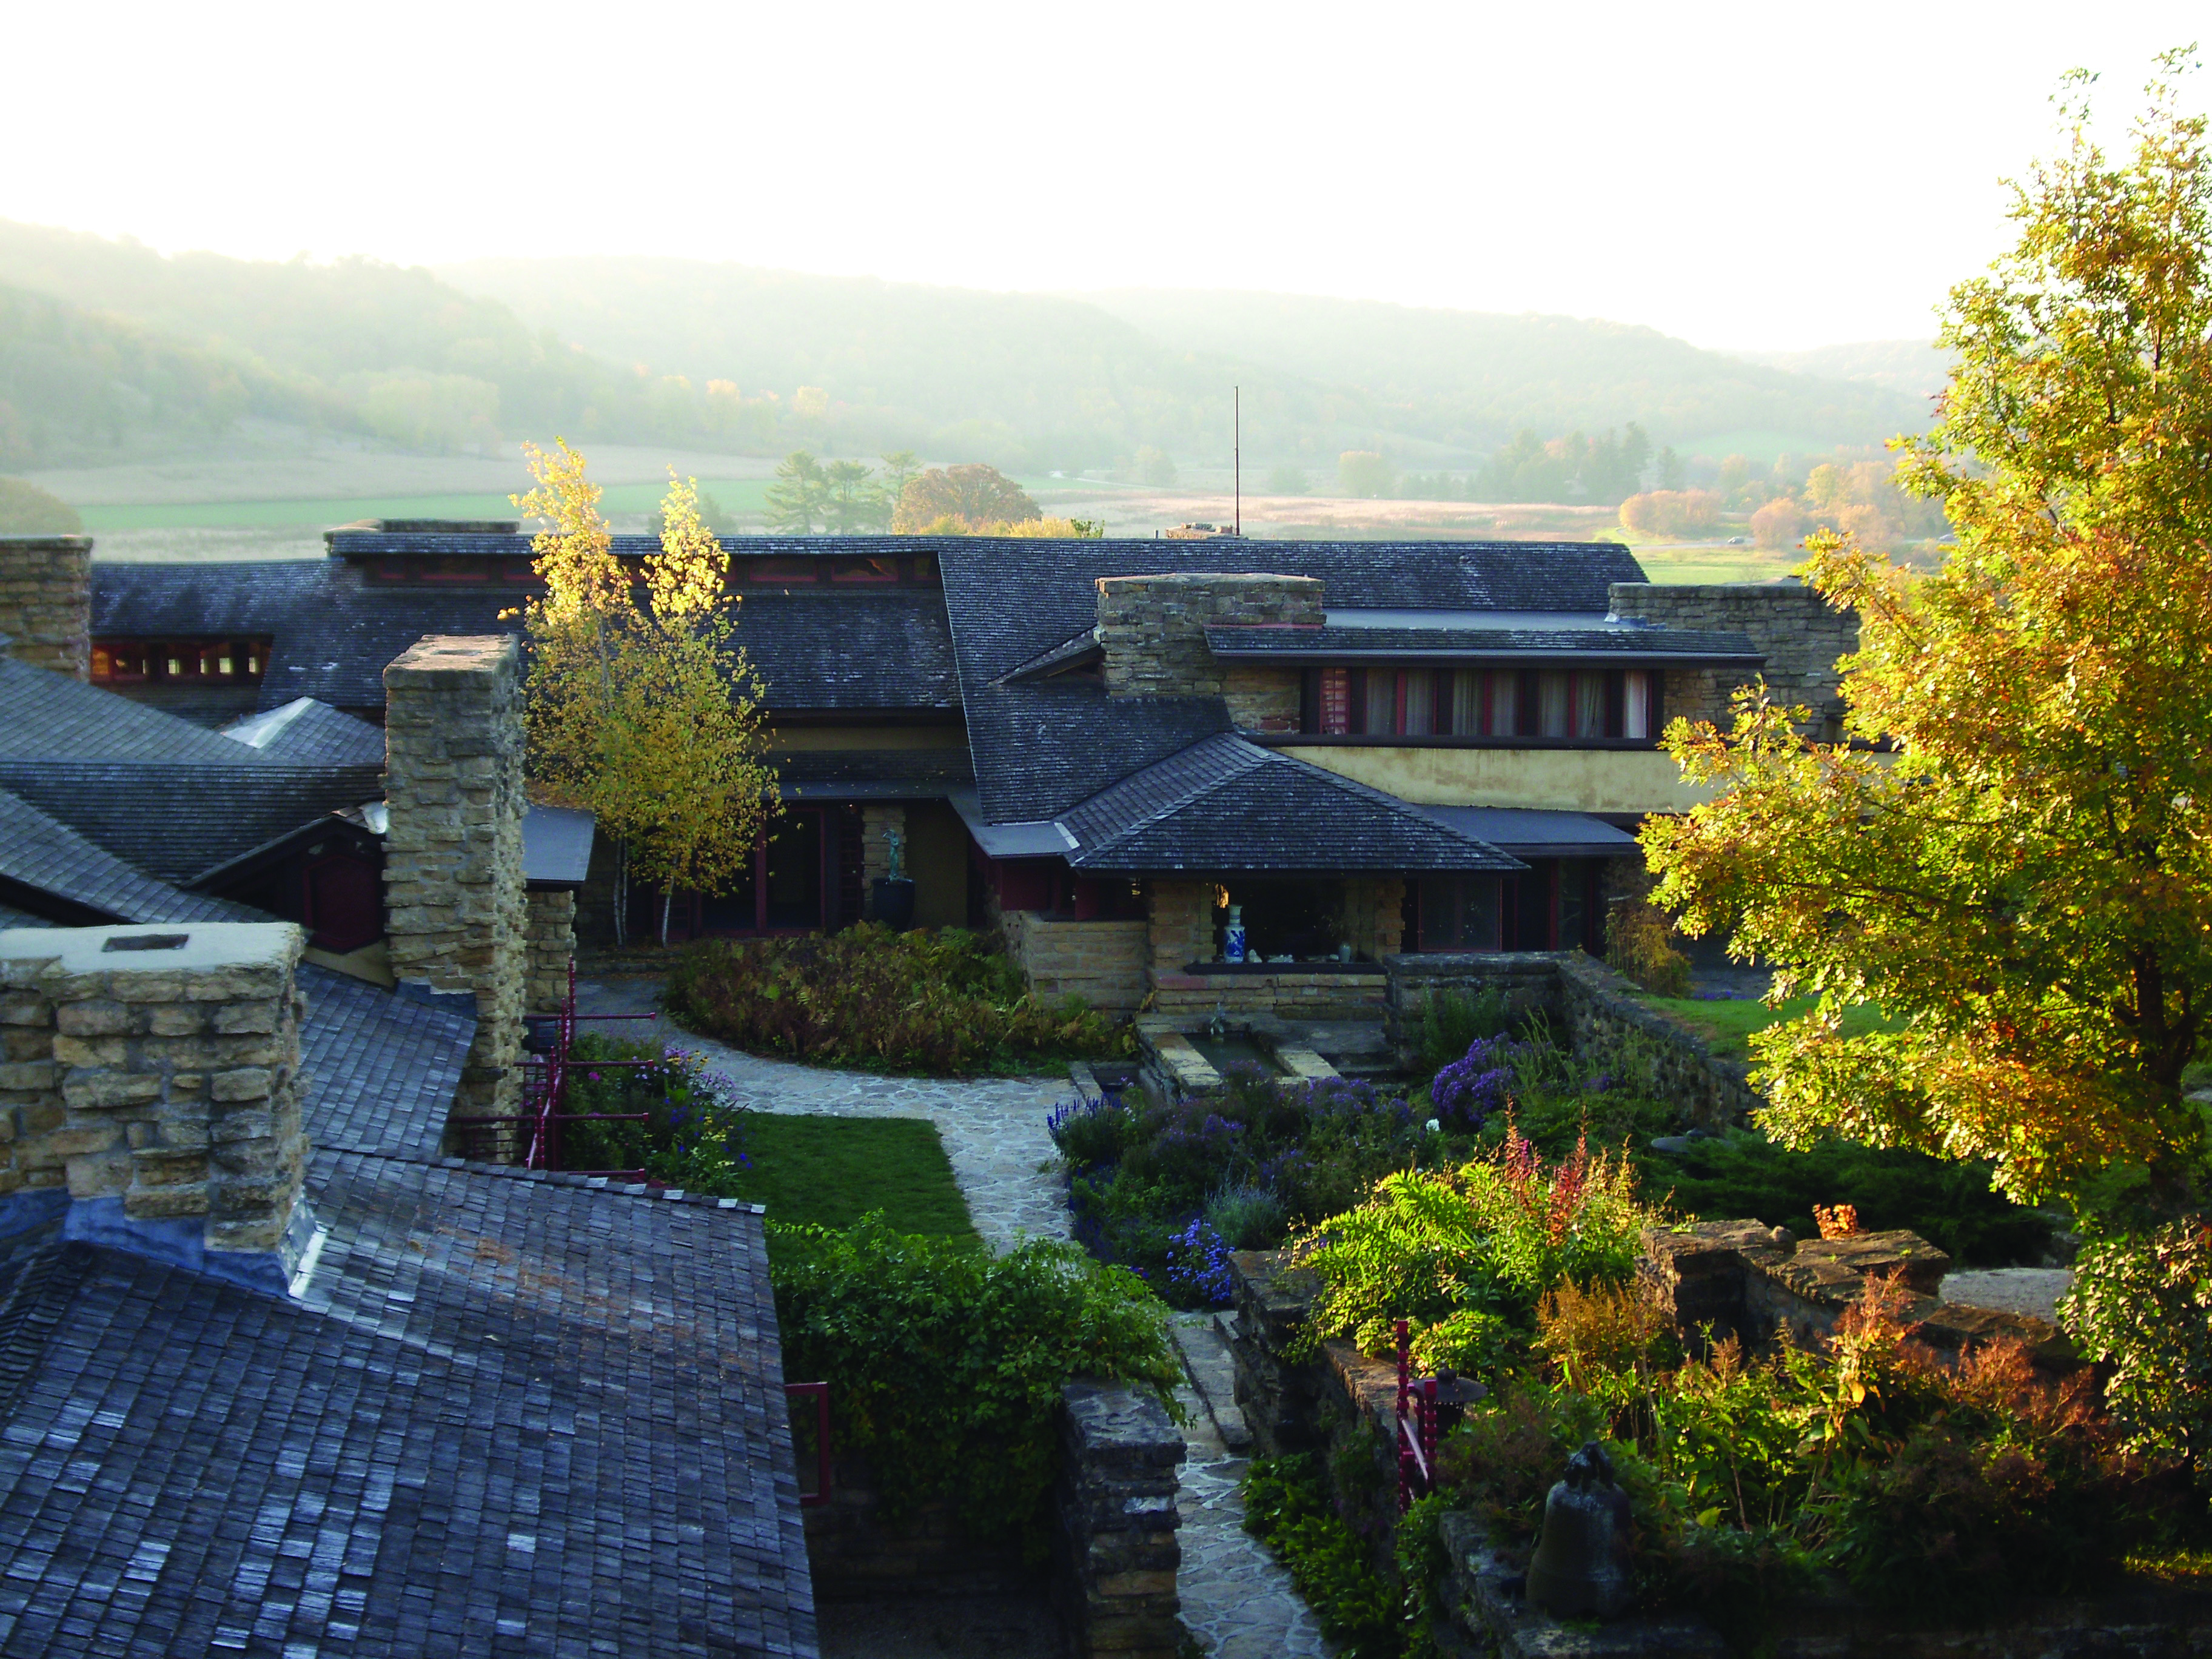 taliesin-and-courtyard-image-courtesy-taliesin-preservation